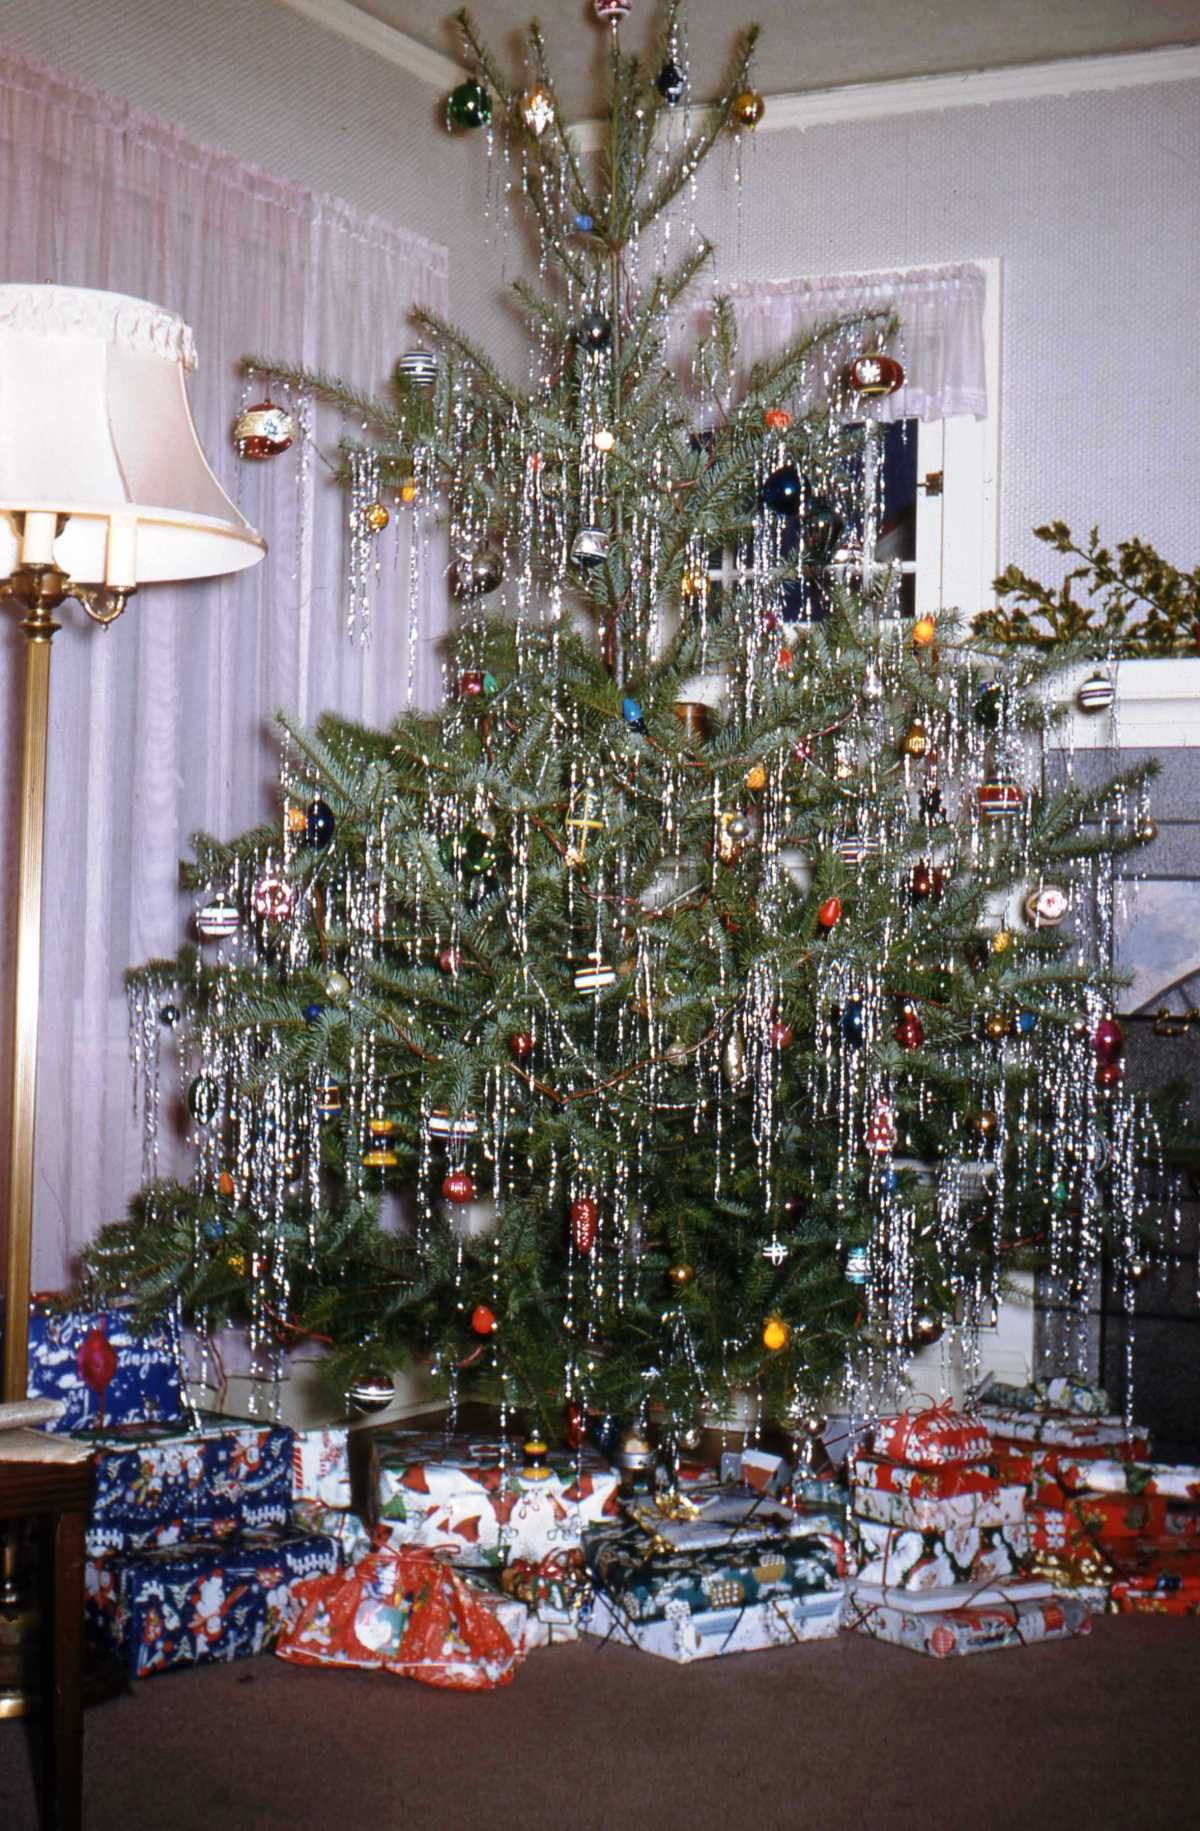 a vintage 1950s christmas tree i love trees dripping with silver tinsellooks like icicles - Silver Tinsel Christmas Tree